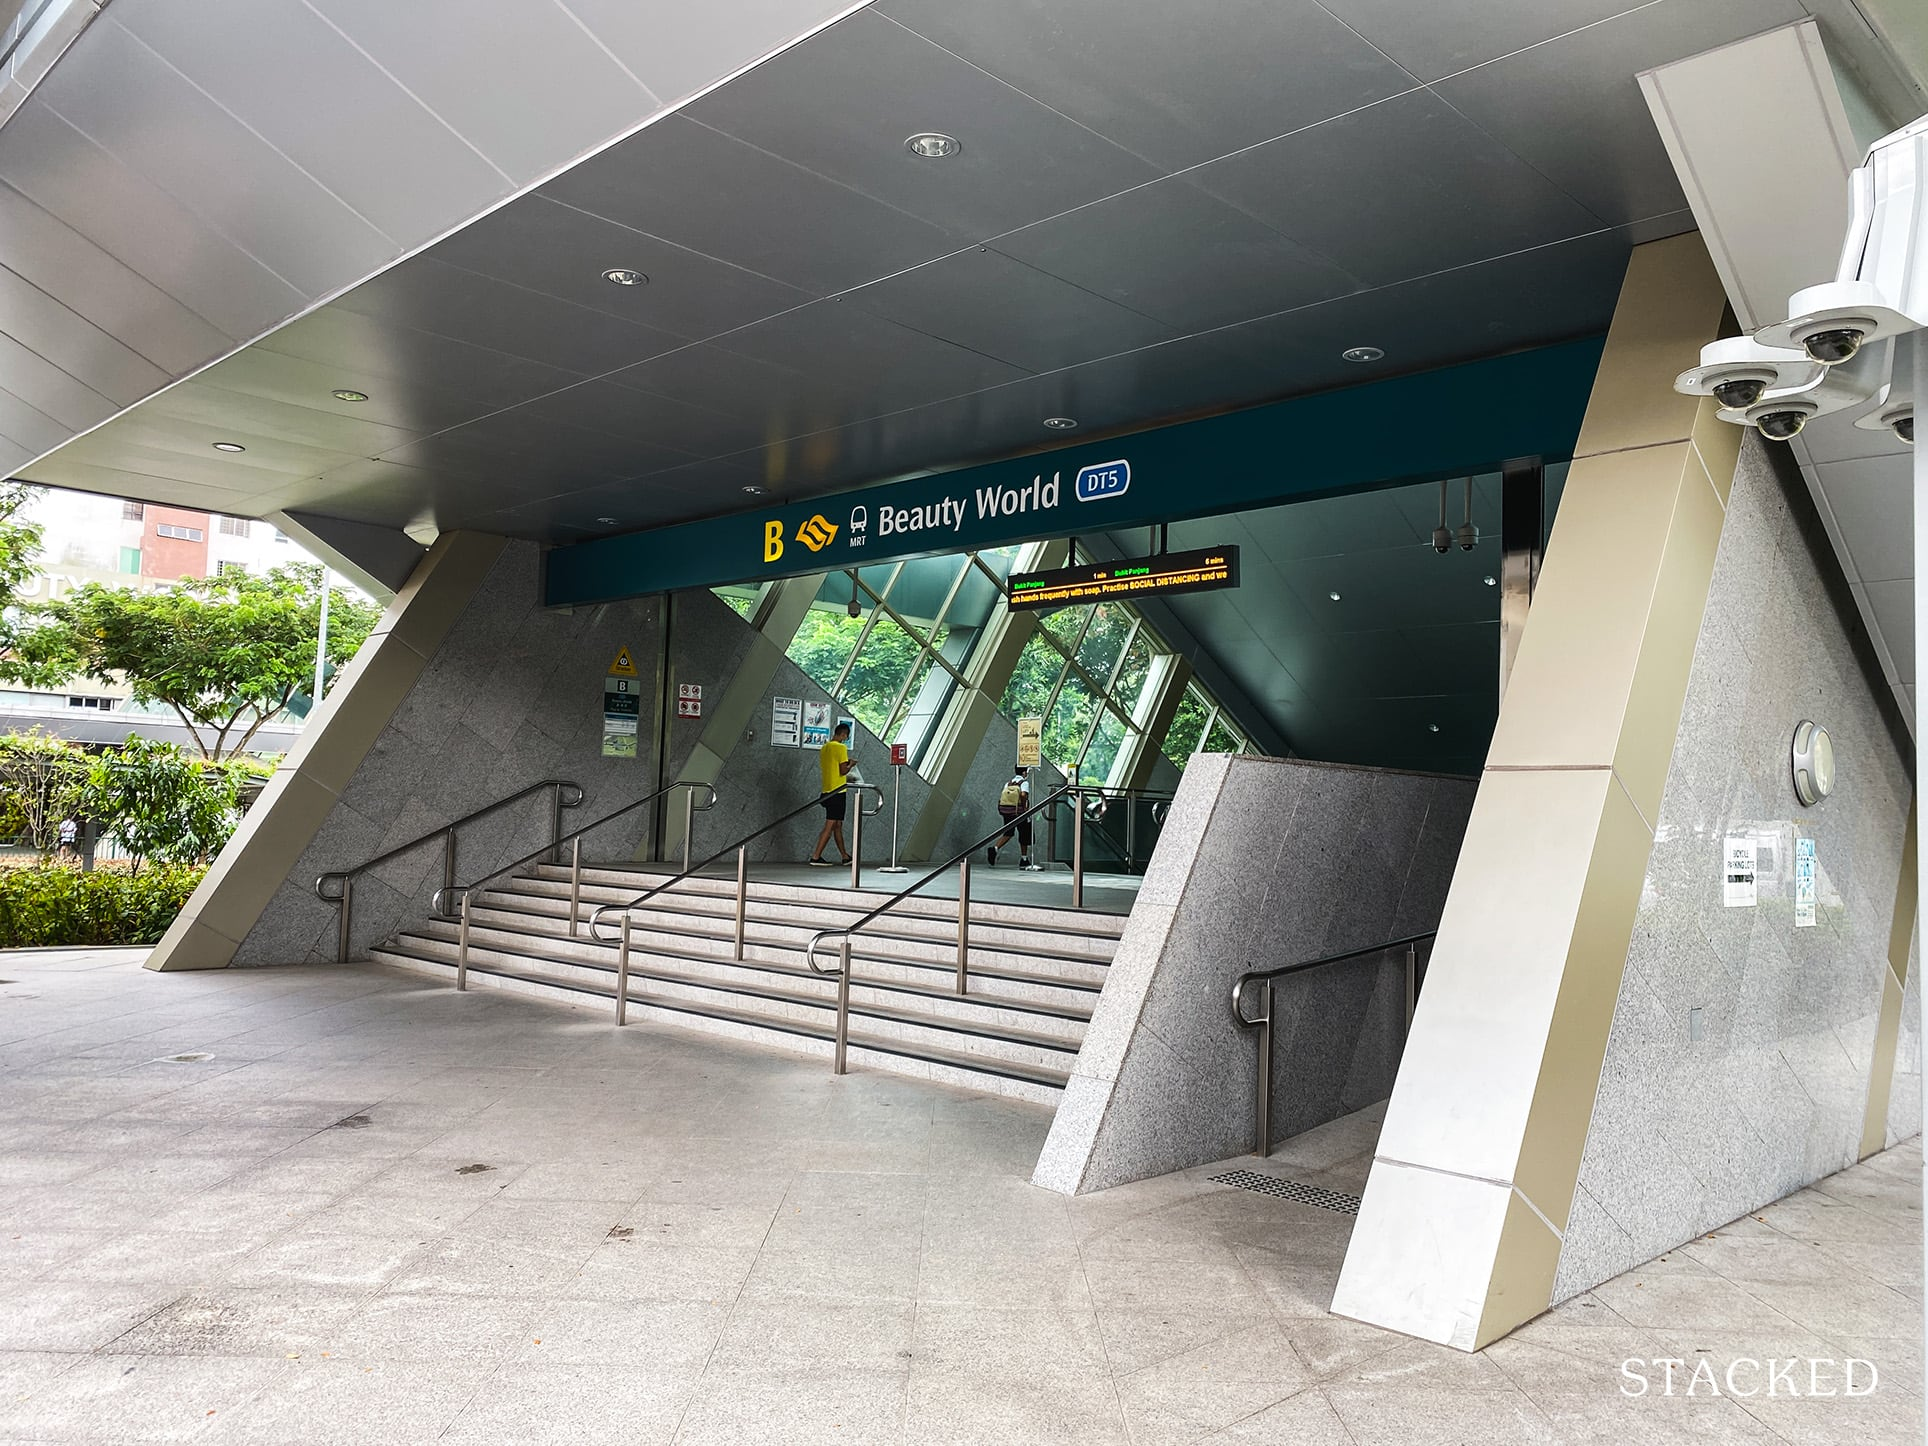 beauty world mrt downtown line